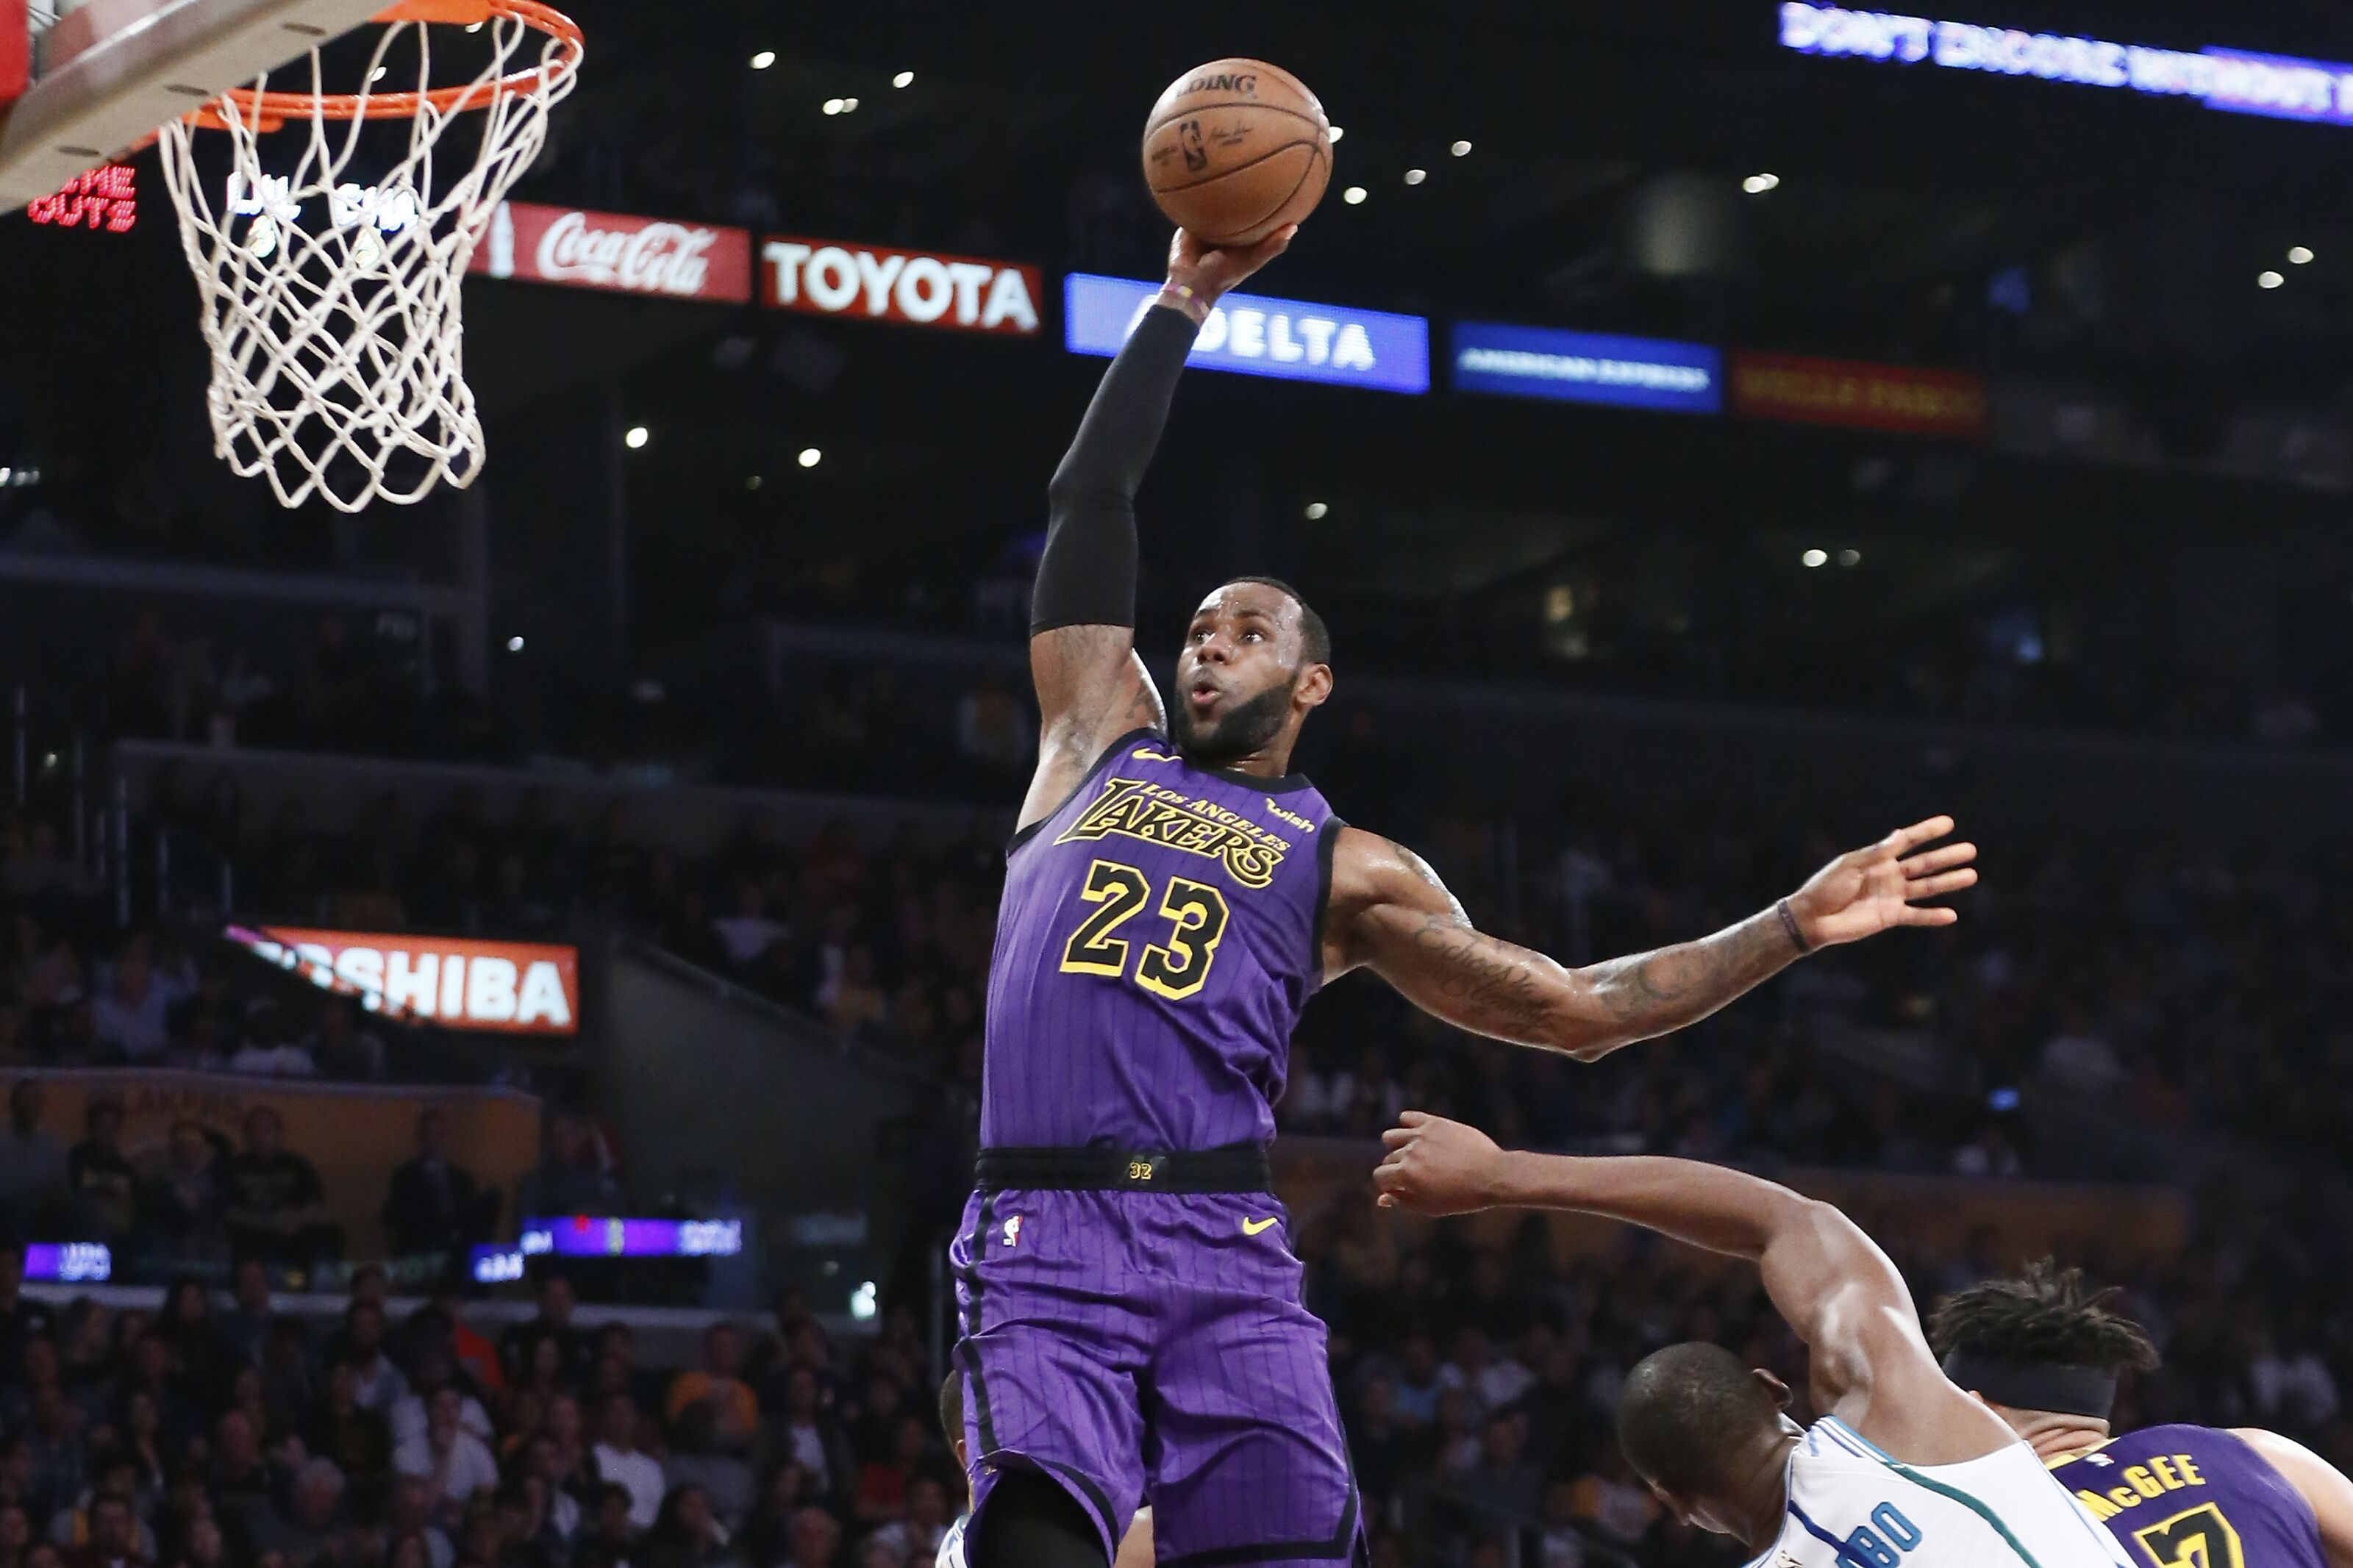 Los Angeles Lakers: LeBron James must play with a vengeance in 2019-2020 season